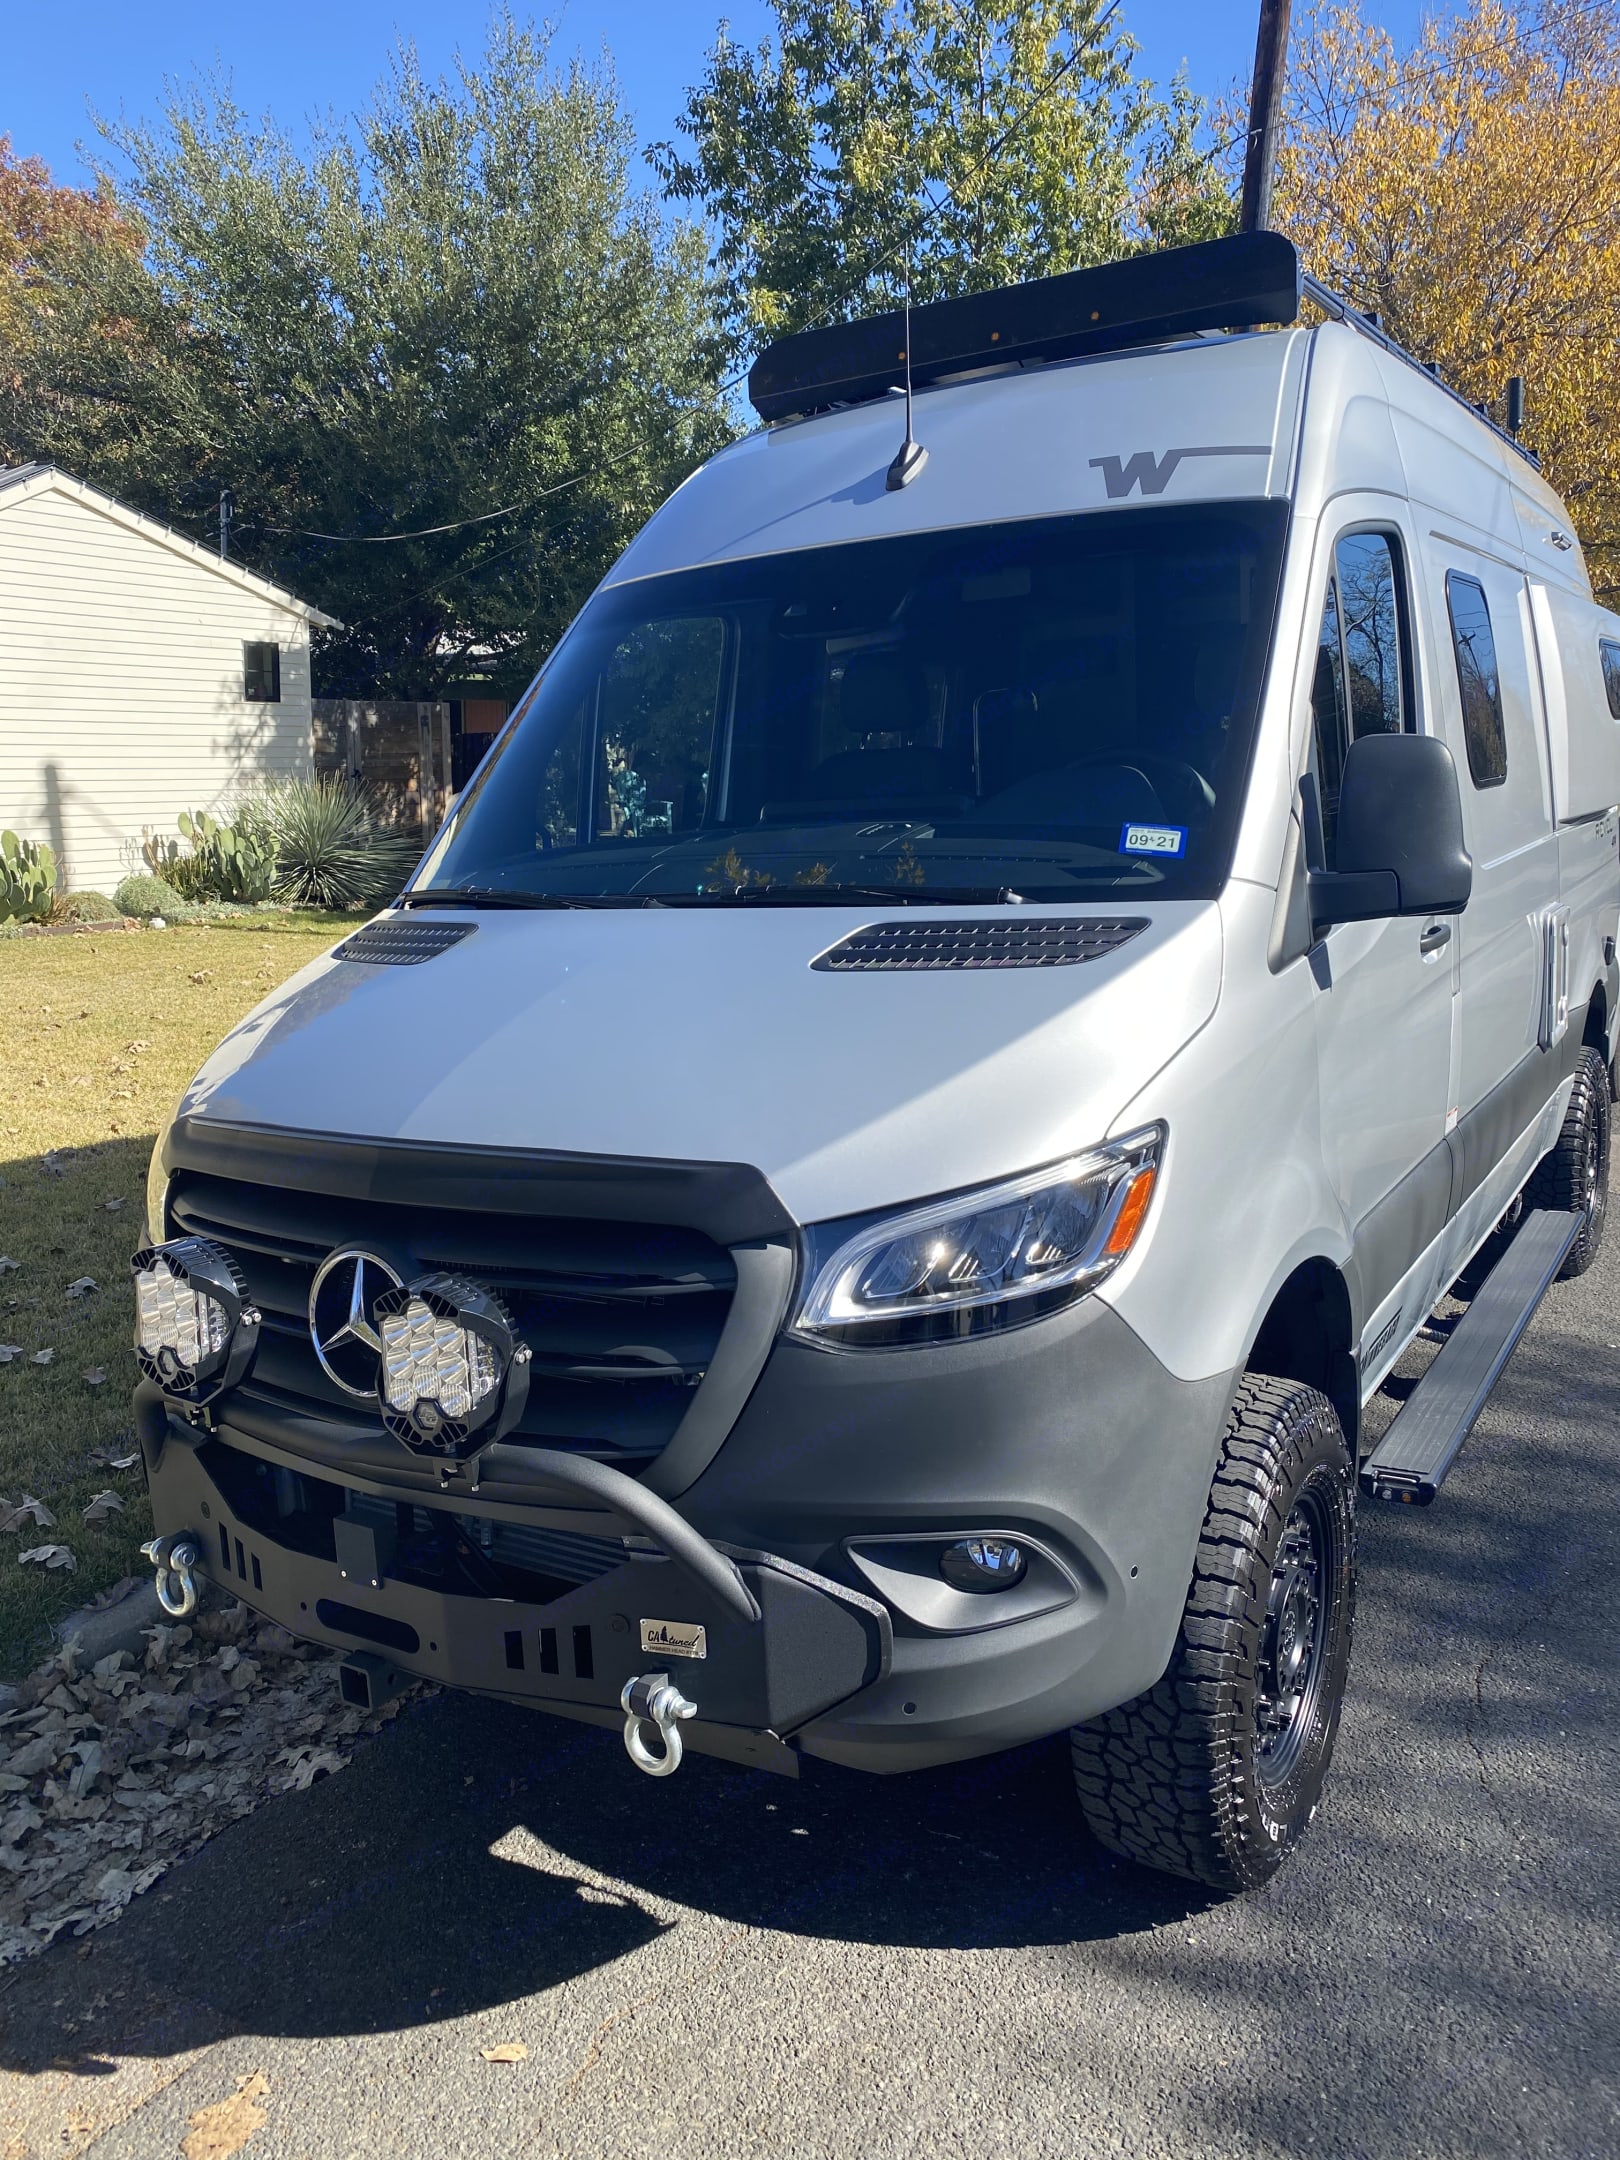 Baja lights when its very dark coming into a camp site. Mercedes-Benz Sprinter 2021